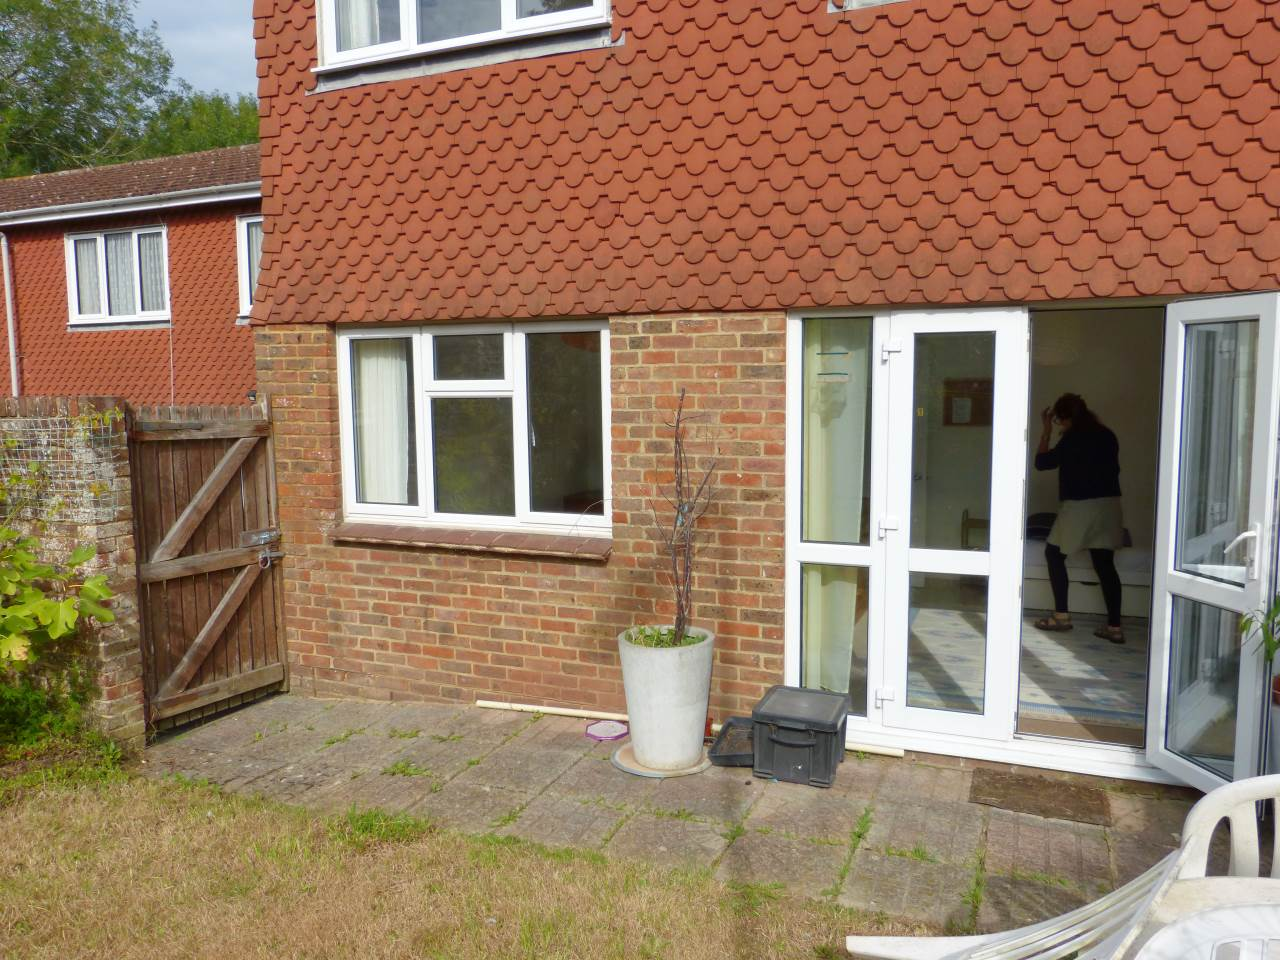 4 bed house to rent in 16 Hoopers Close Lewes BN7 2EH, BN7